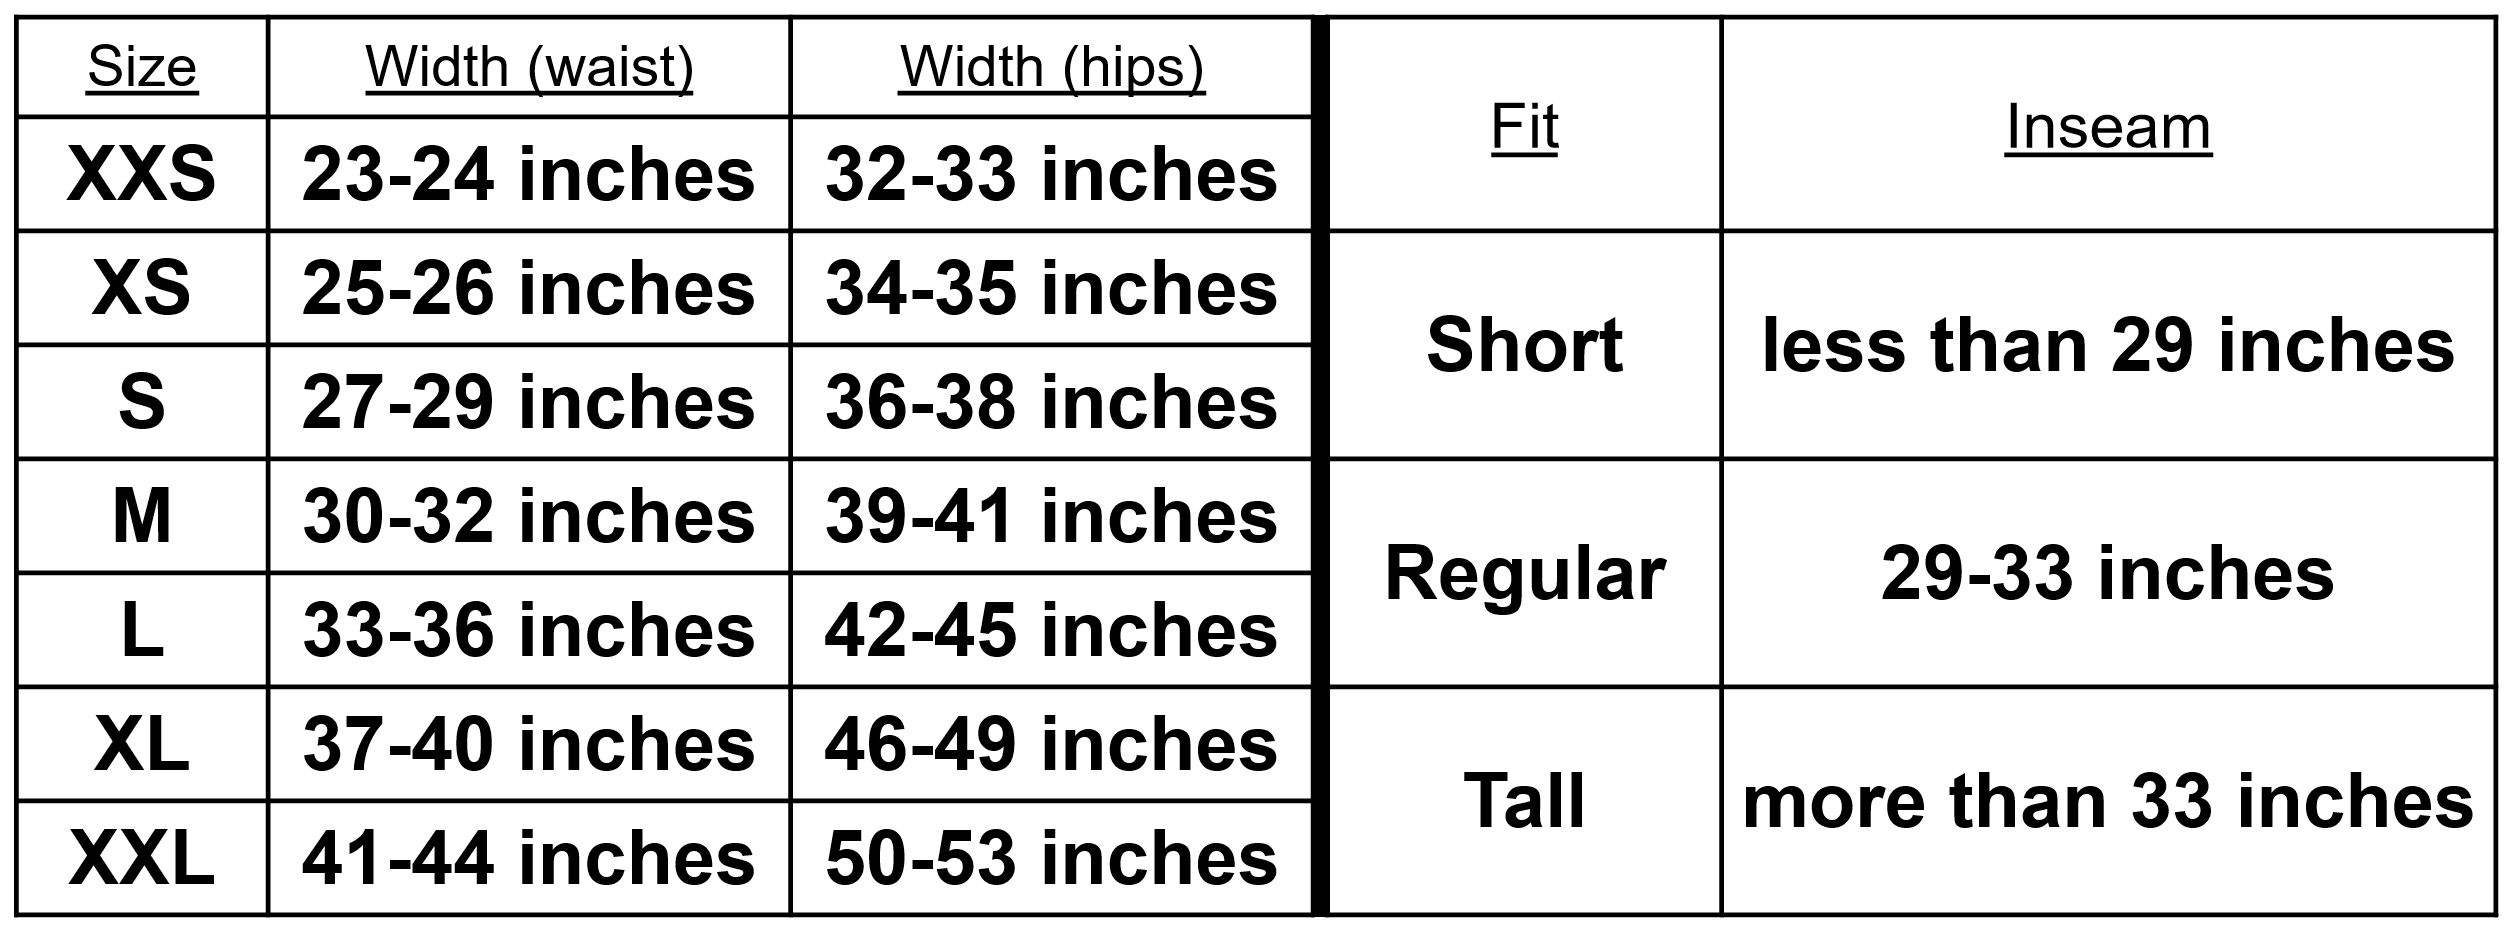 Sizing Guide - Pants